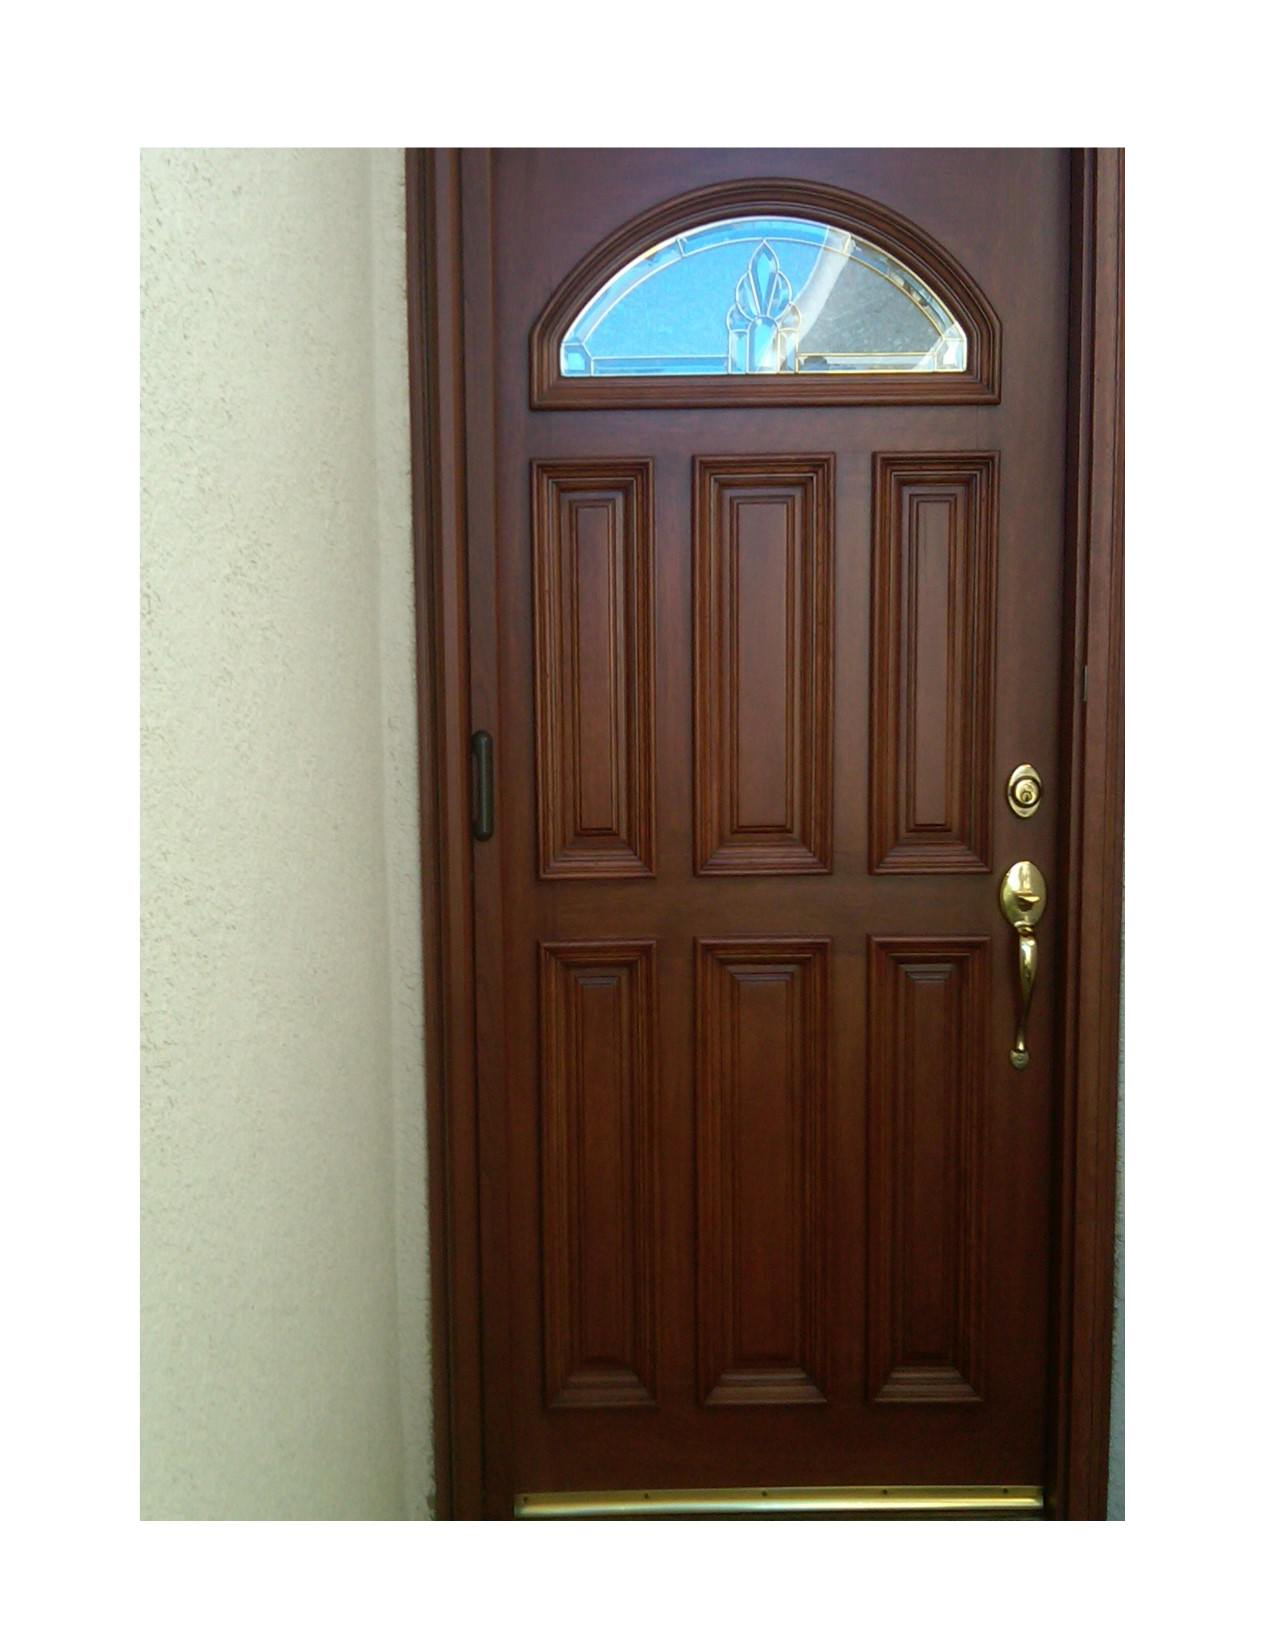 Mirage retractable screens screens 4 less Cost of retractable screen doors